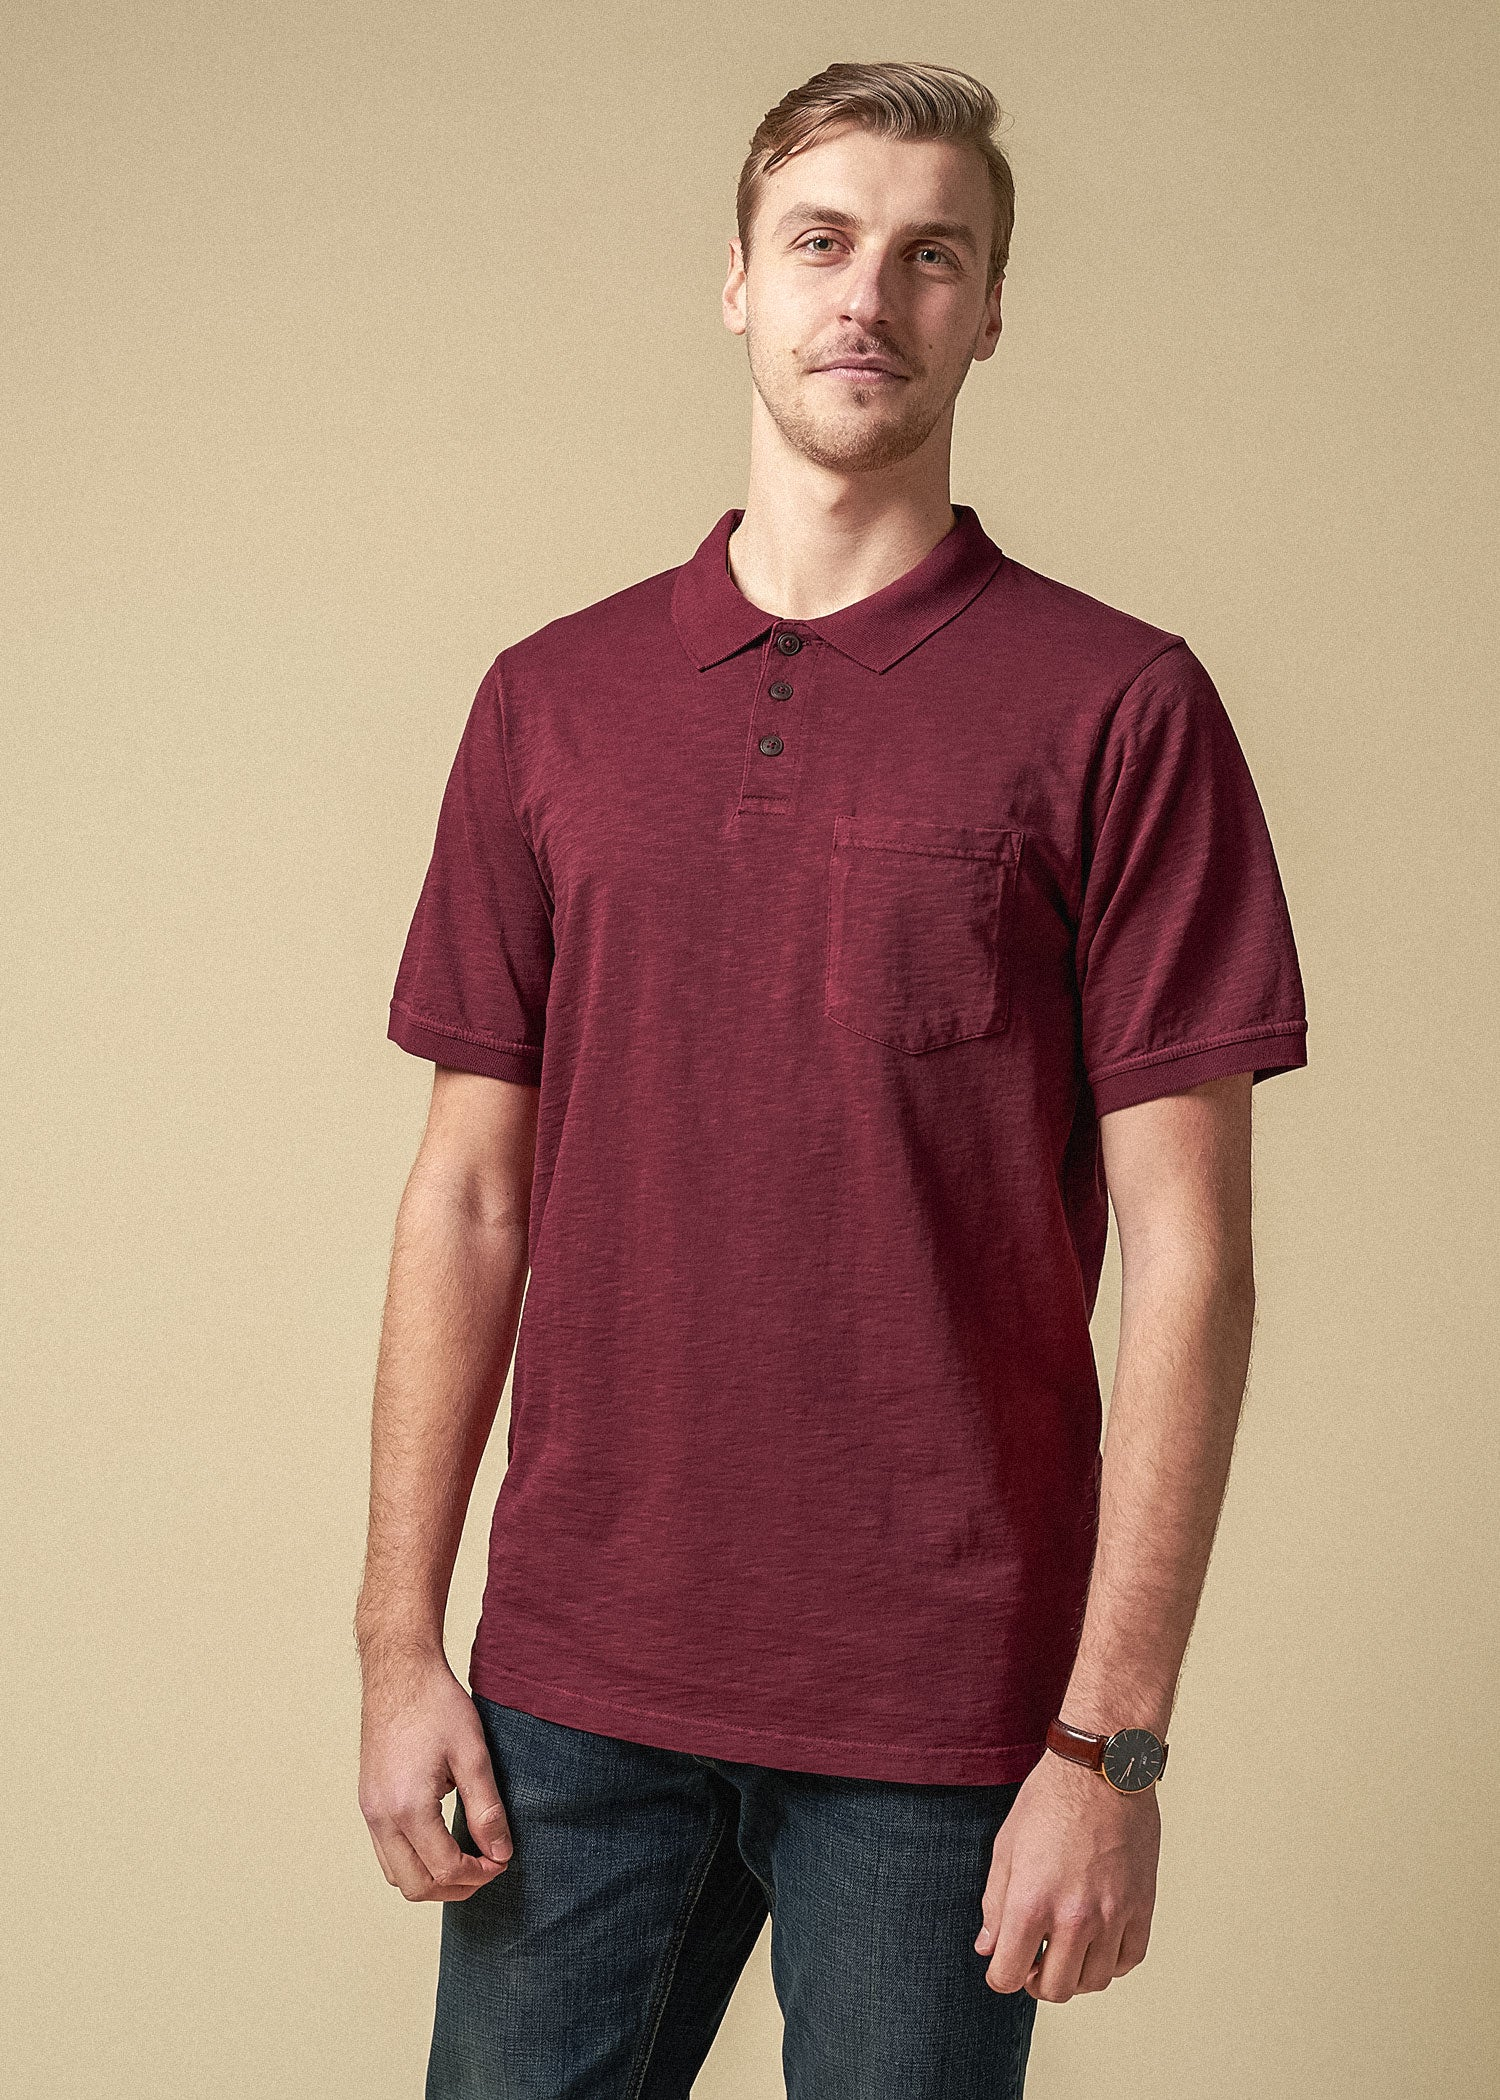 tall_mens_slub_pocket_polo_vintage_sumac_red-frontv2